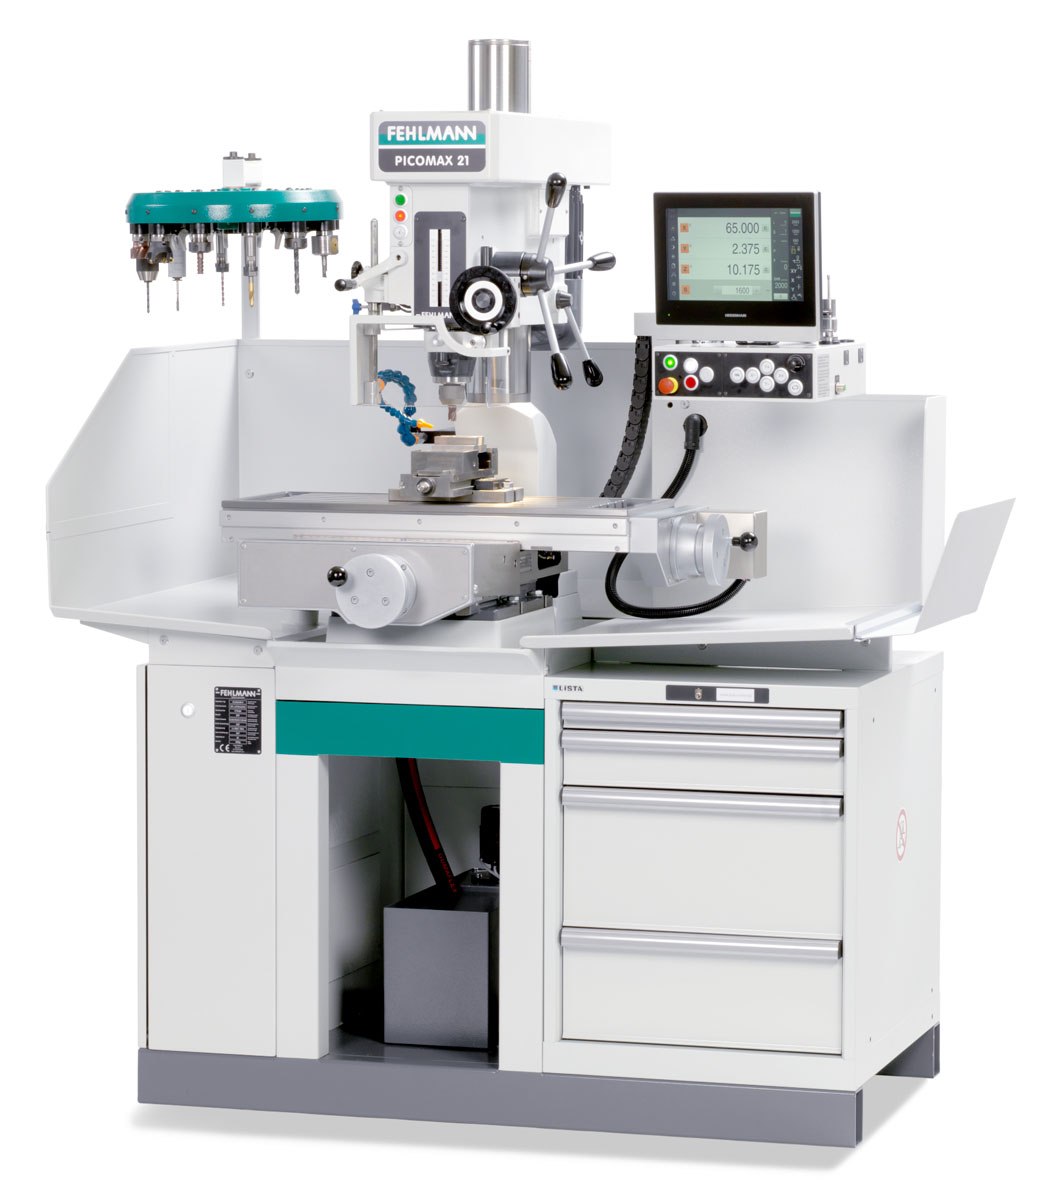 PICOMAX 21-M – robust and very user-friendly precision coordinate drilling and milling machine